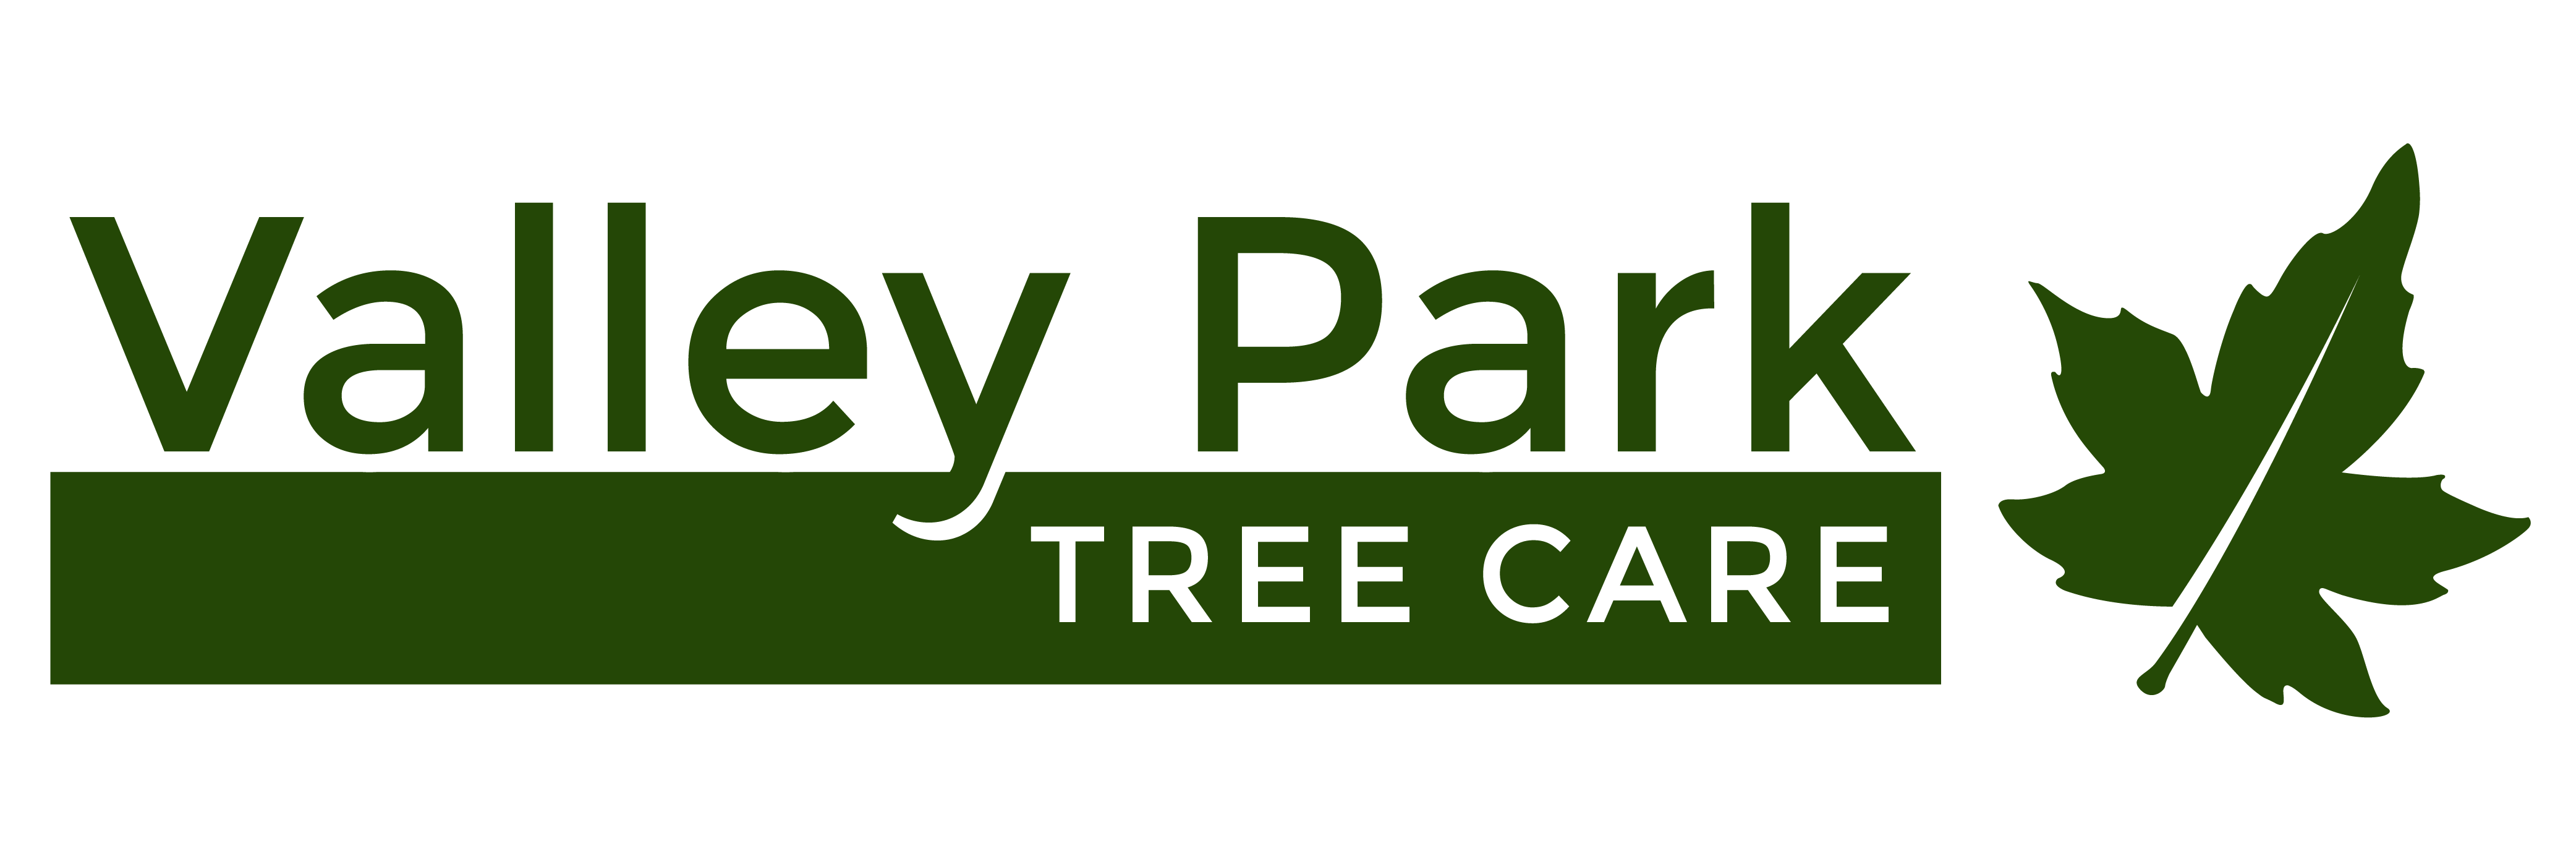 Valley Park Tree Care Logo